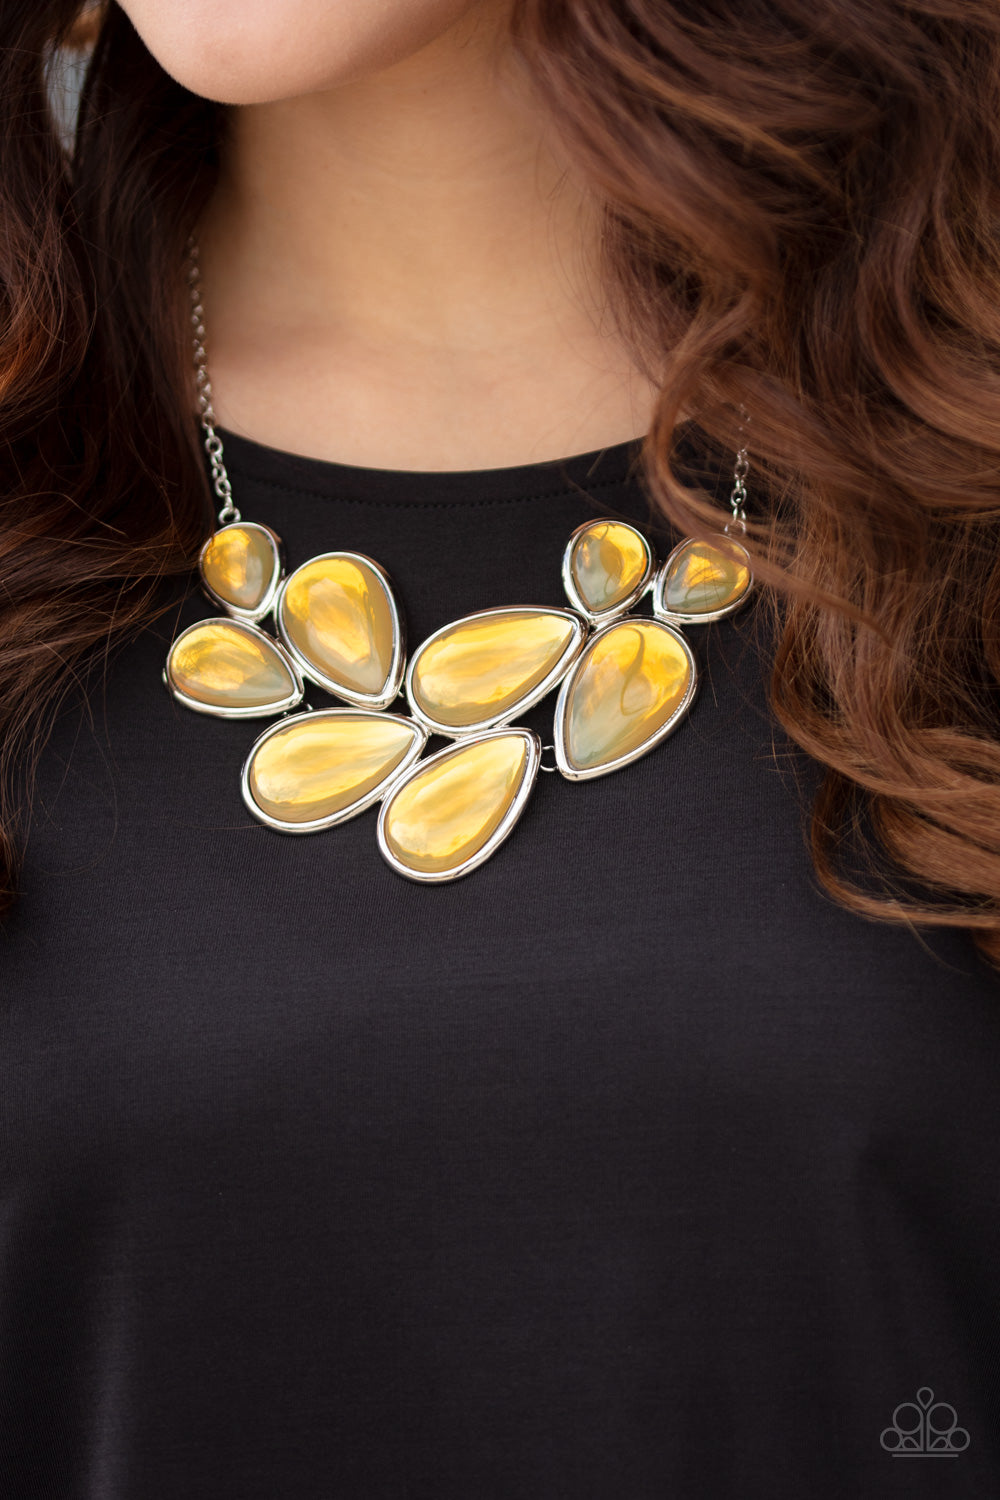 Paparazzi Jewelry & Accessories - Iridescently Irresistible - Yellow Necklace. Bling By Titia Boutique